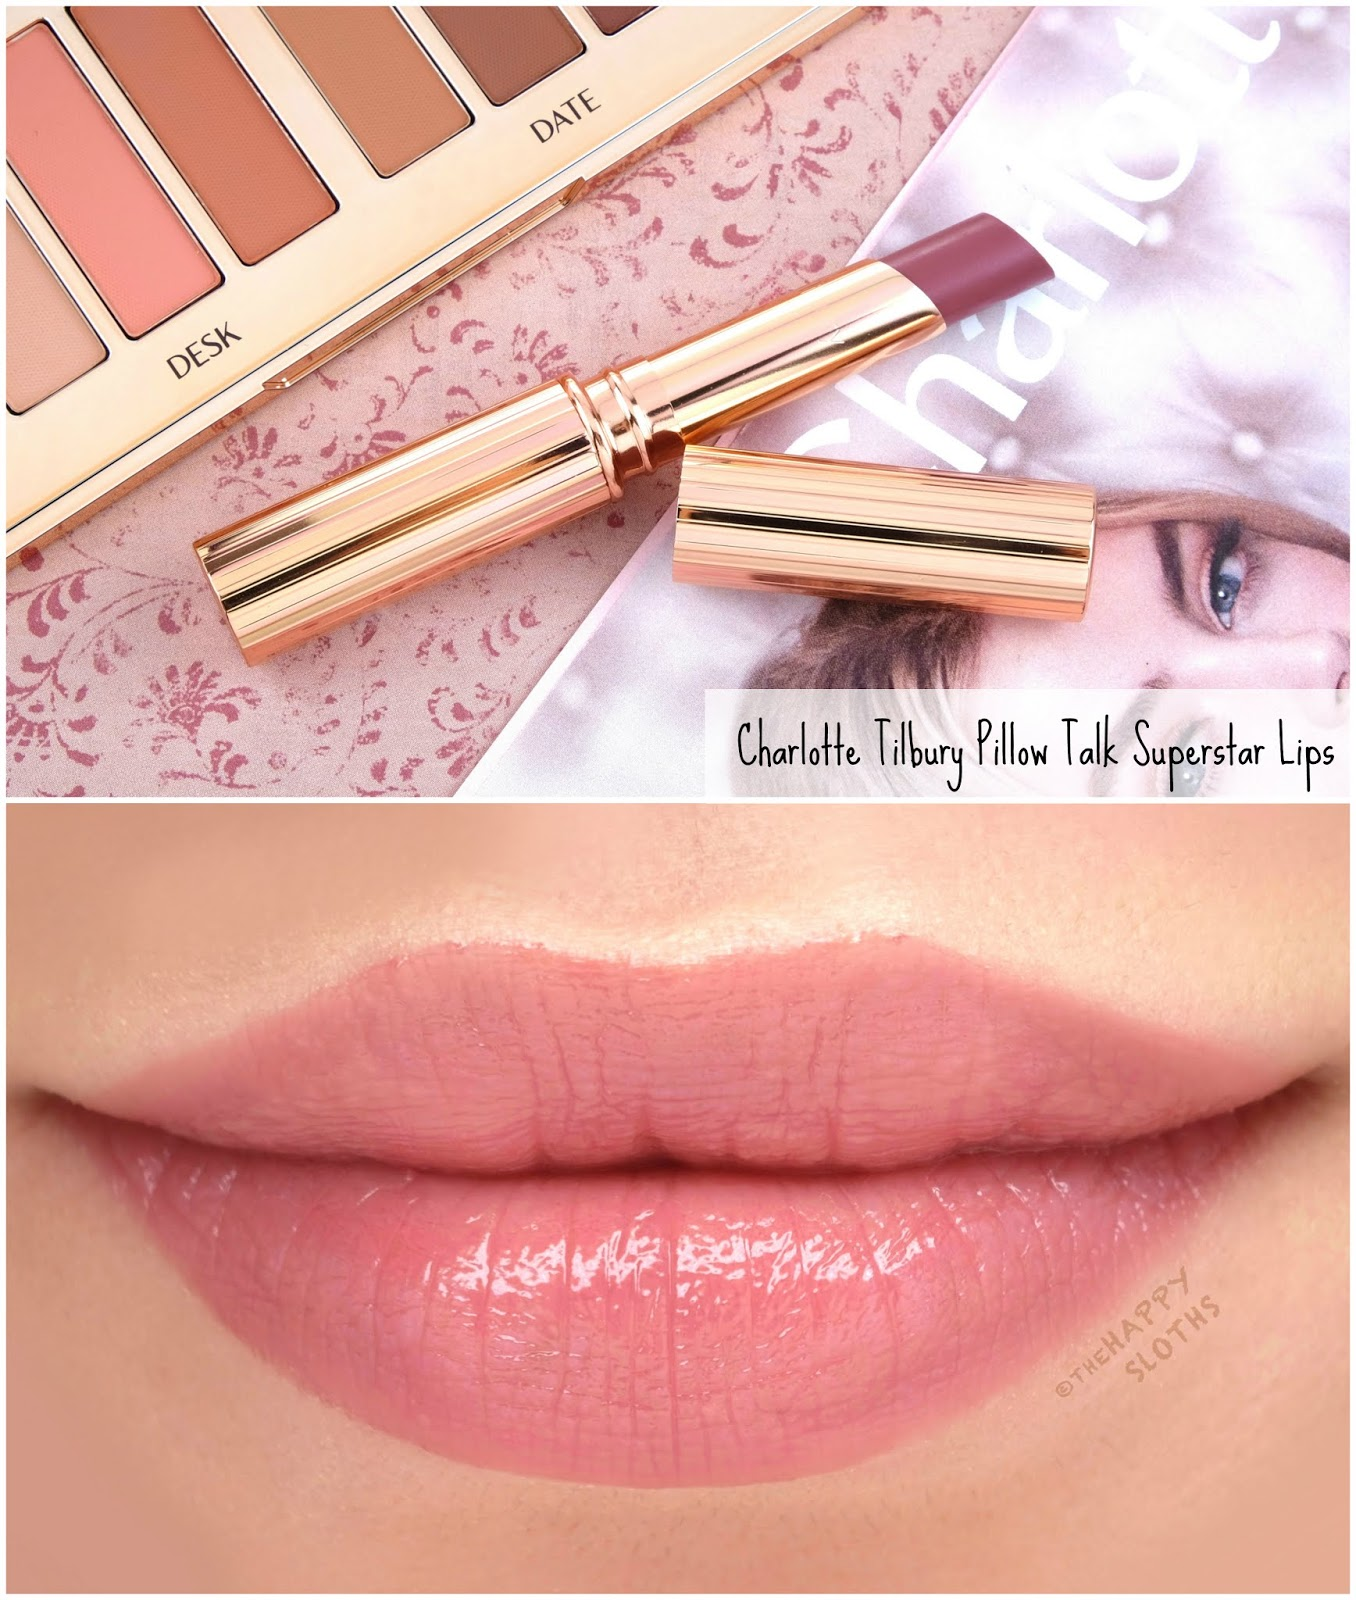 Charlotte Tilbury | Pillow Talk Superstar Lips: Review and Swatches